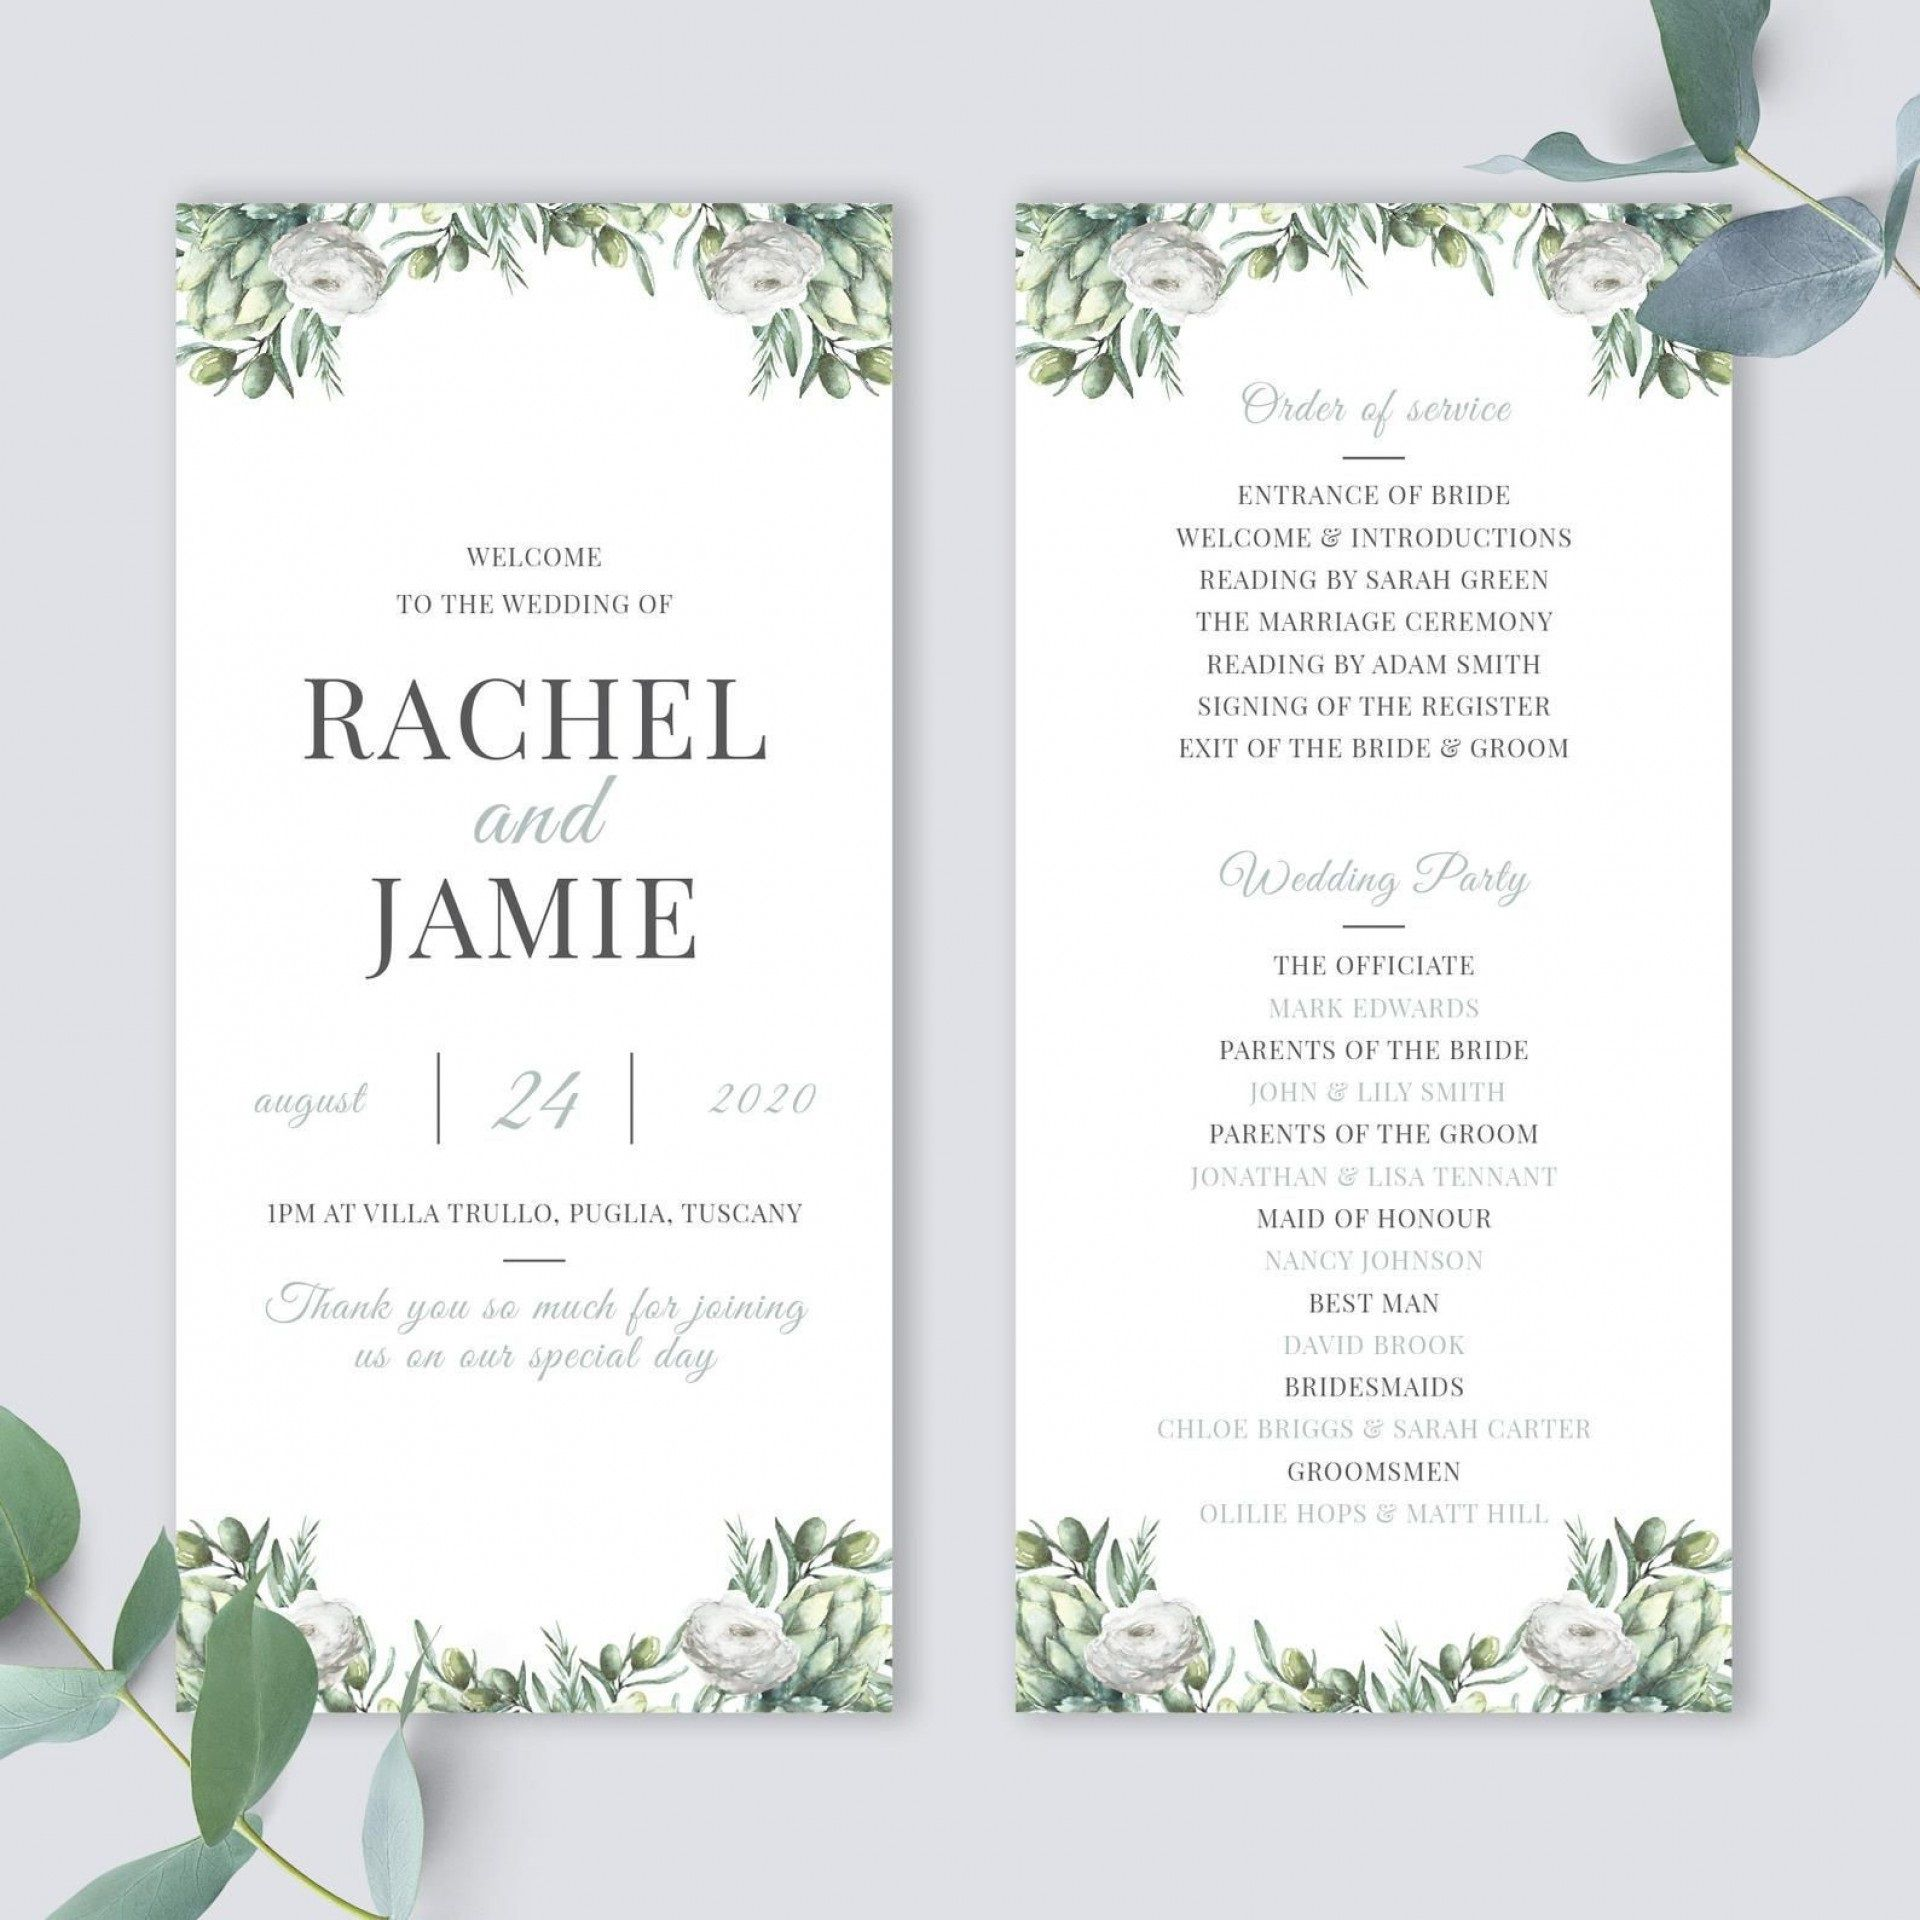 009 Excellent Traditional Wedding Order Of Service Template Uk Picture Full